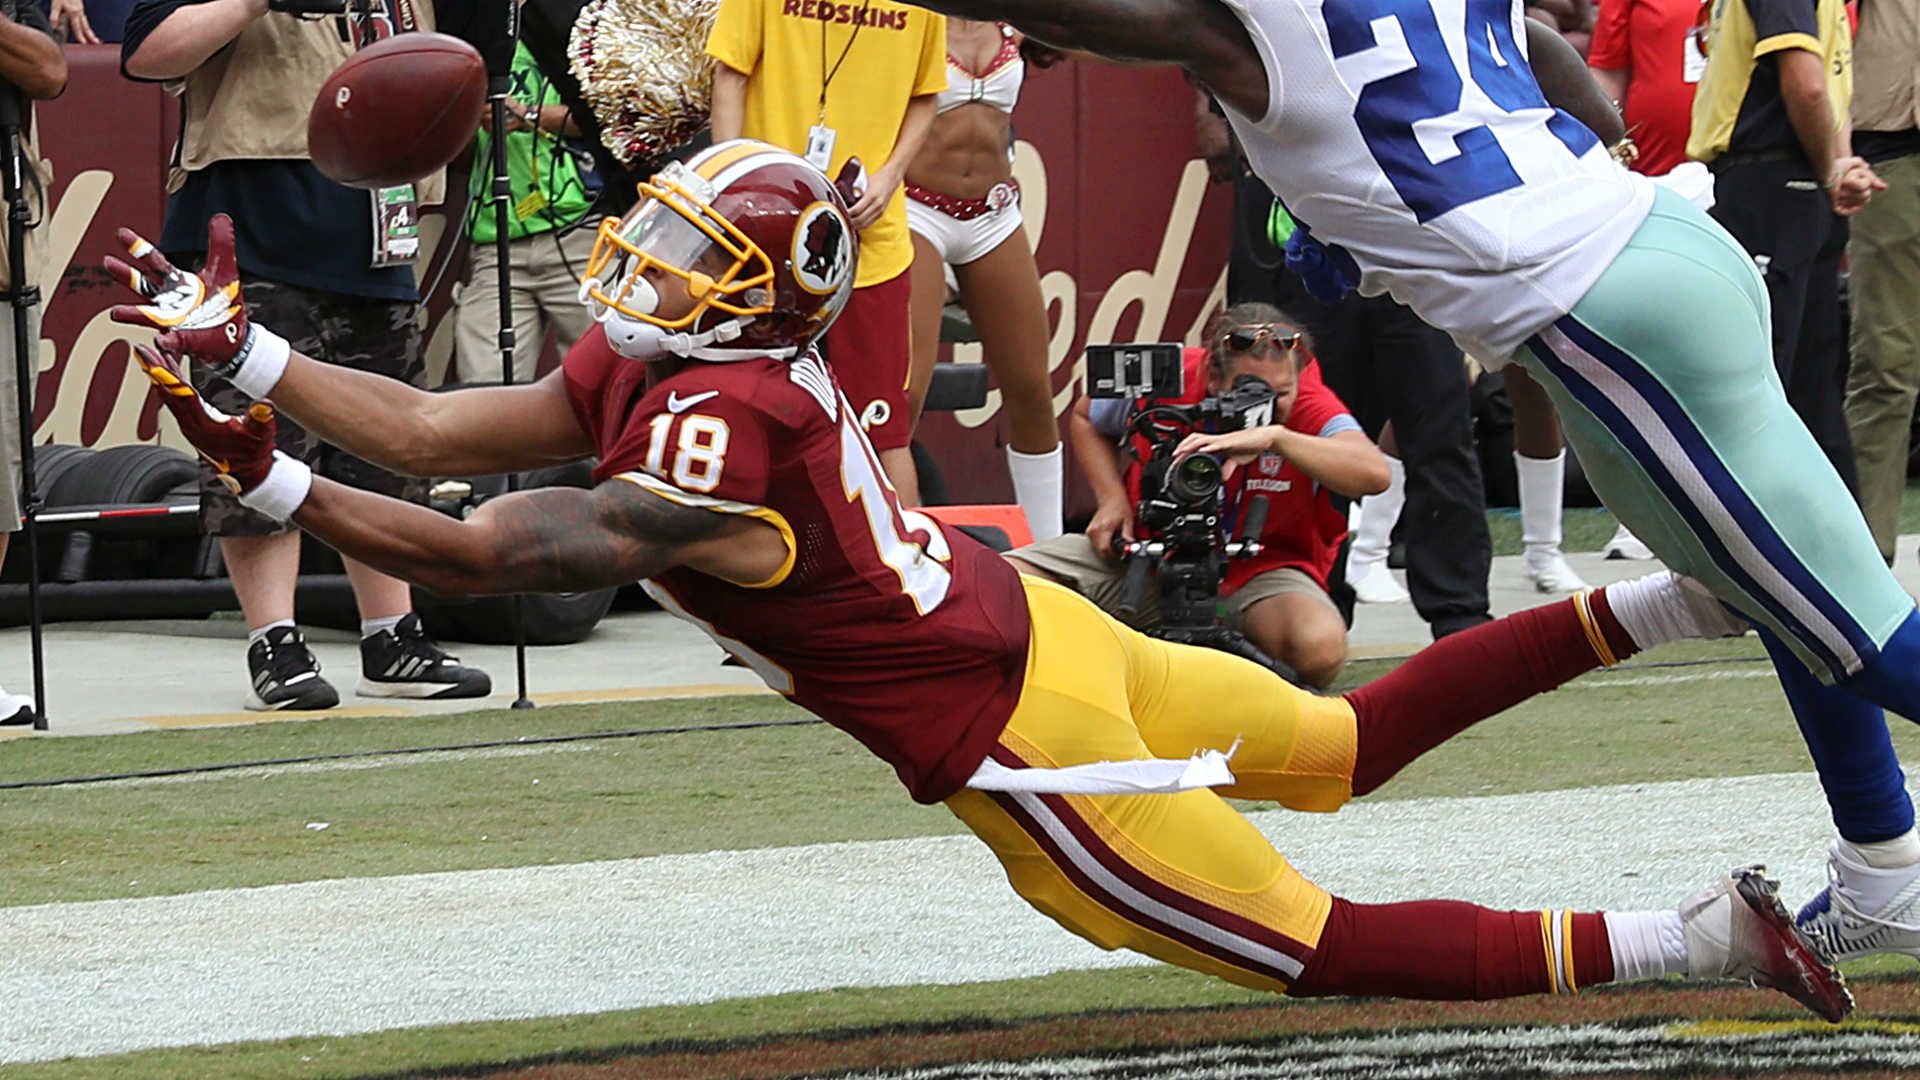 Redskins' Maurice Harris Makes One-Handed Touchdown Catch